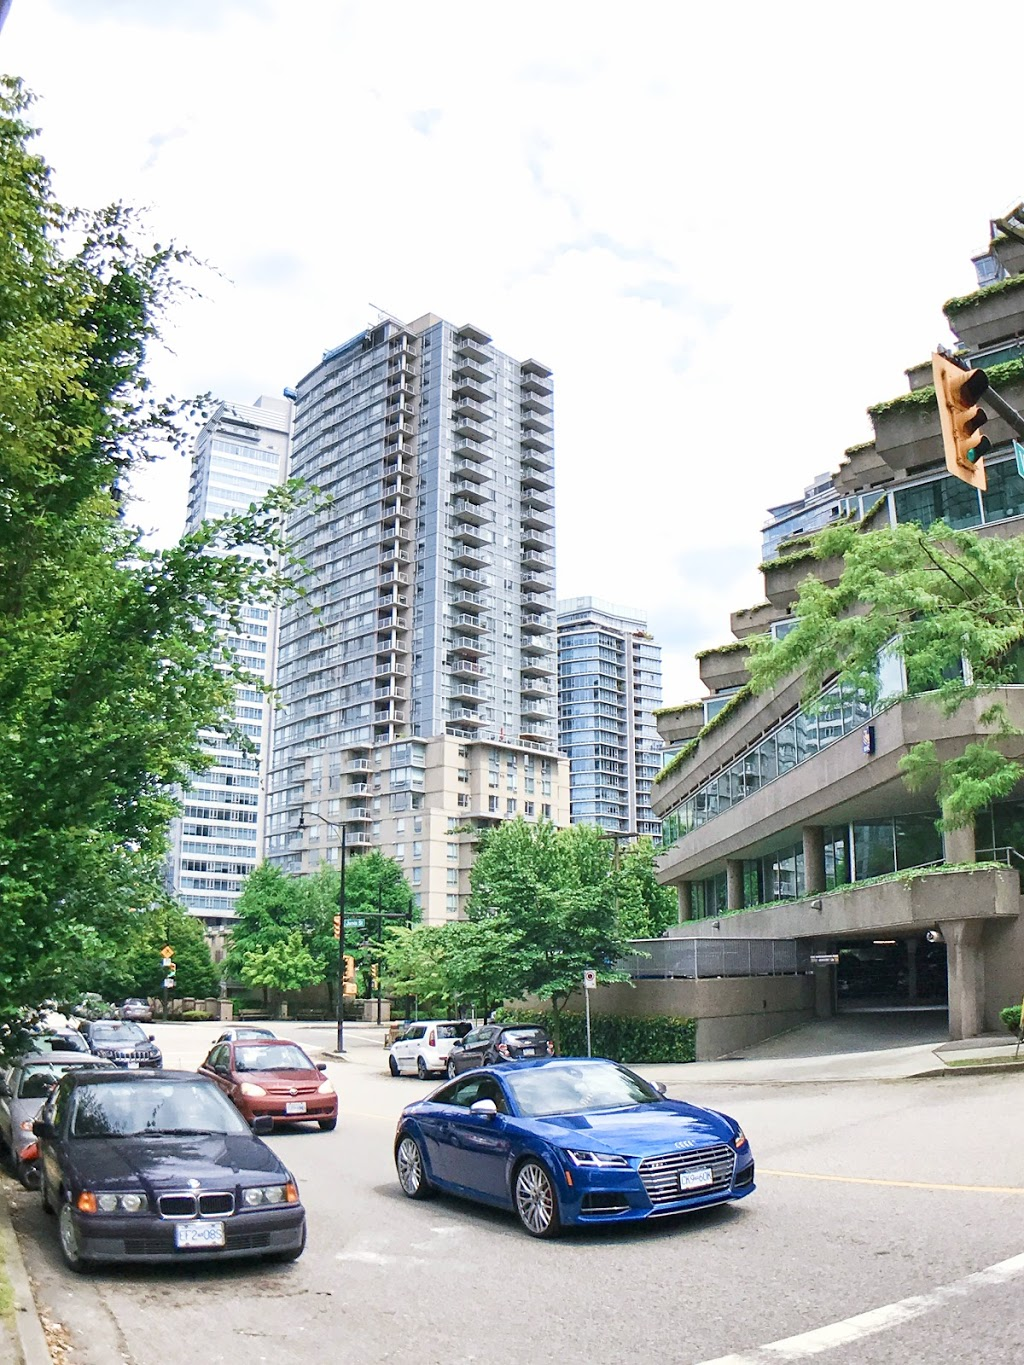 Real Estate Coal Harbour | real estate agency | 708-1155 W Pender St, Vancouver, BC V6E 2P4, Canada | 7789910649 OR +1 778-991-0649